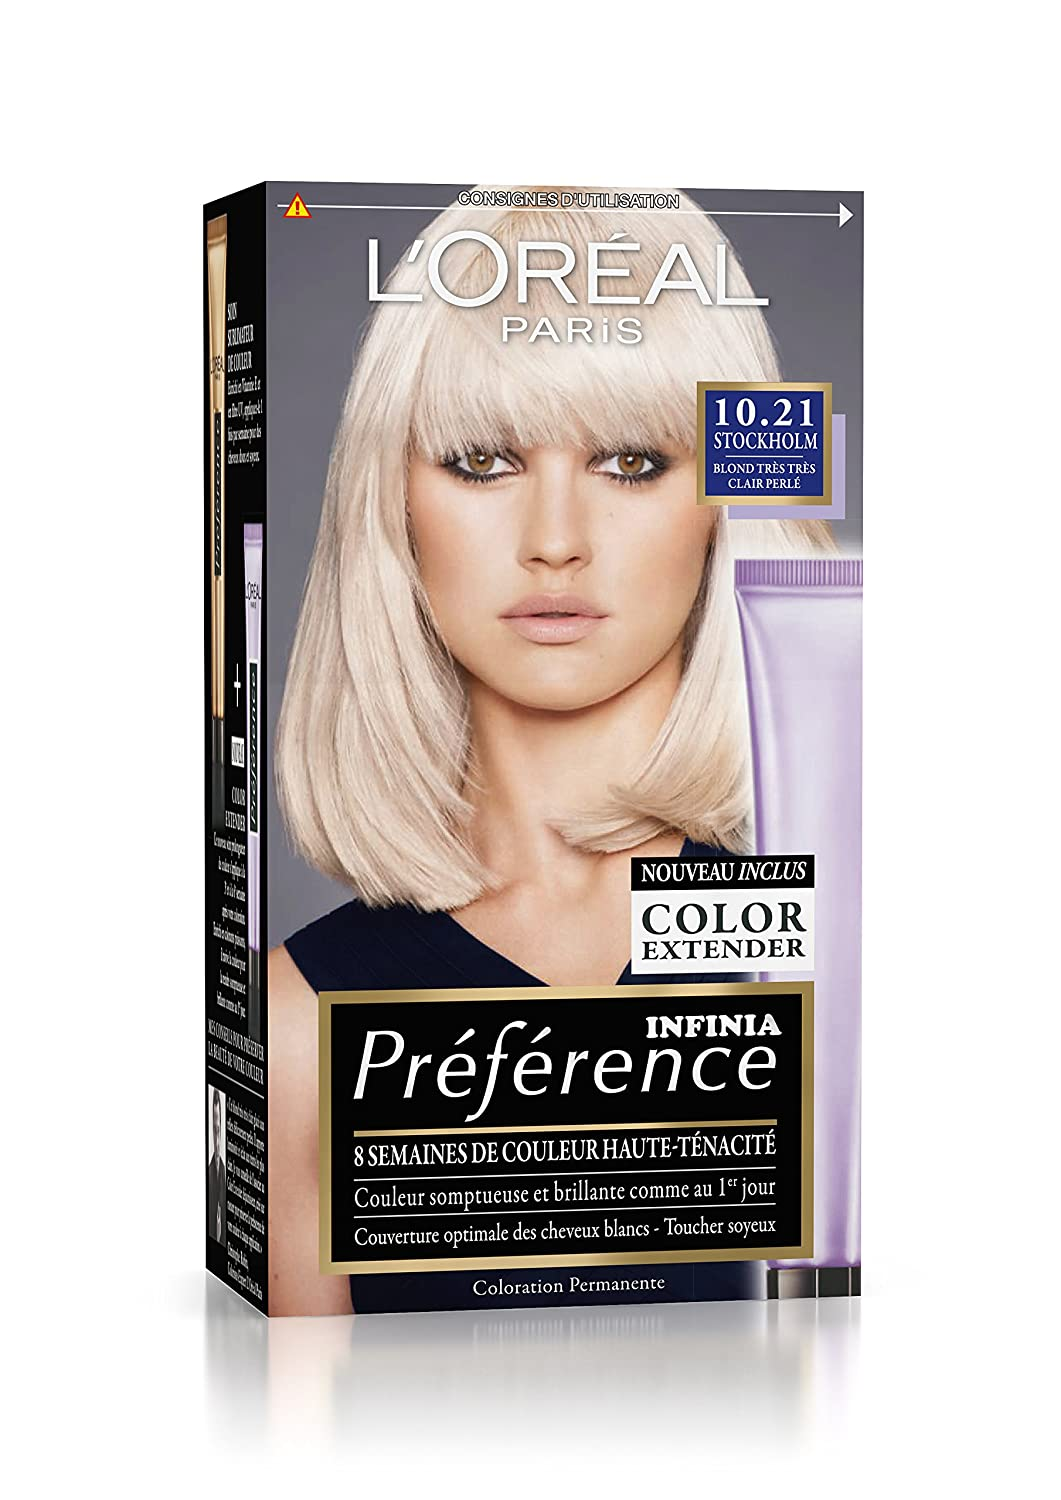 prfrence loral paris coloration permanente 1021 blond trs trs clair perl amazonfr hygine et soins du corps - Coloration Blond Clair Beige